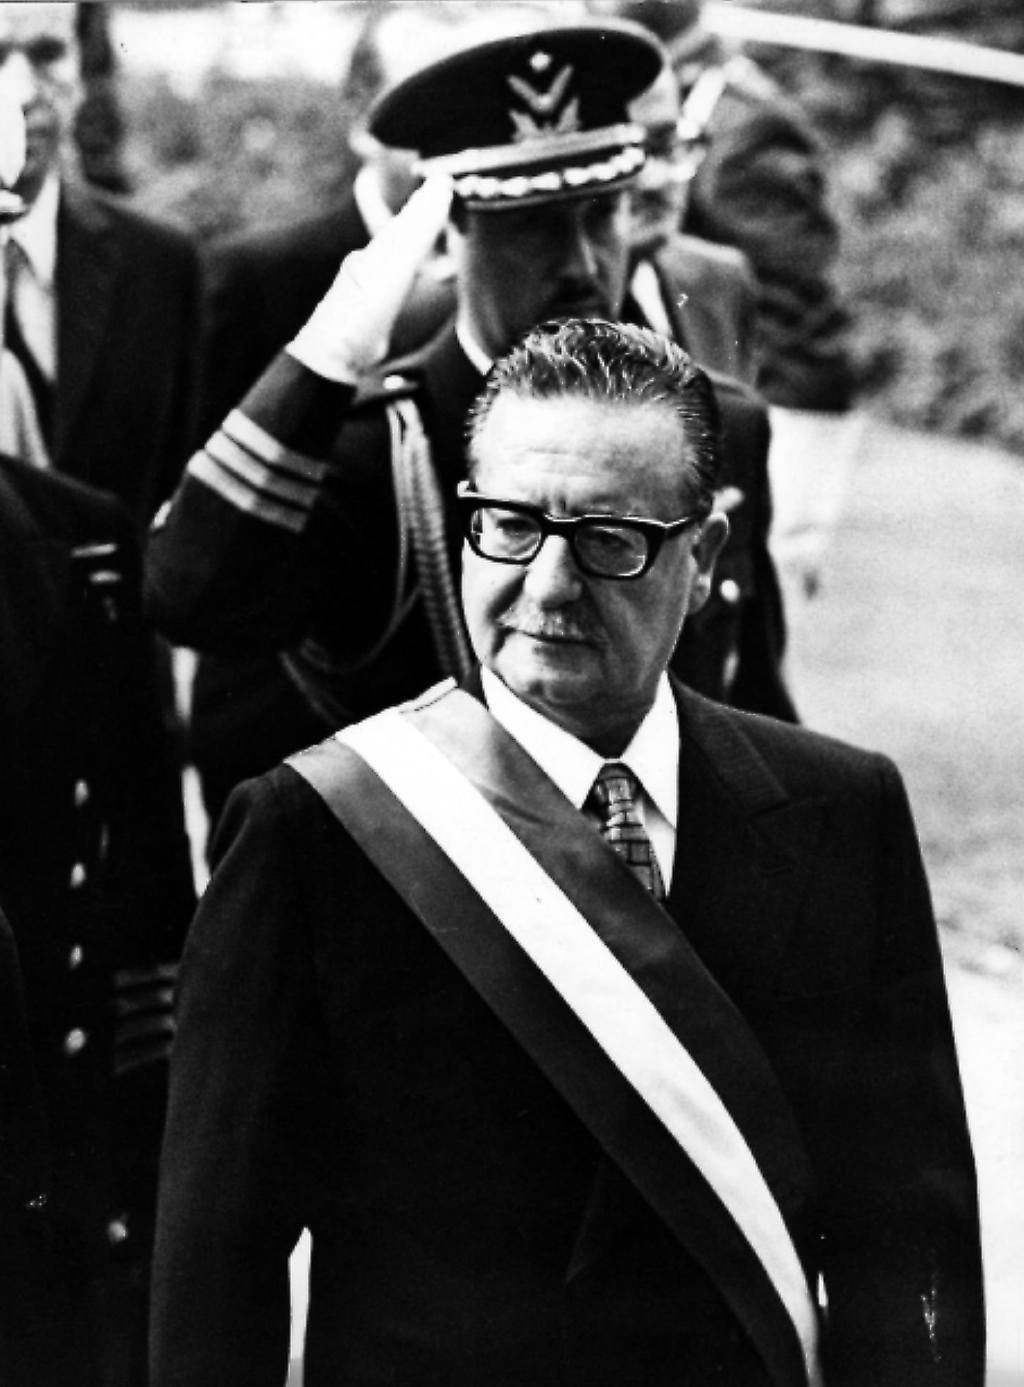 https://upload.wikimedia.org/wikipedia/commons/c/c0/Allende_1970-1973.jpg